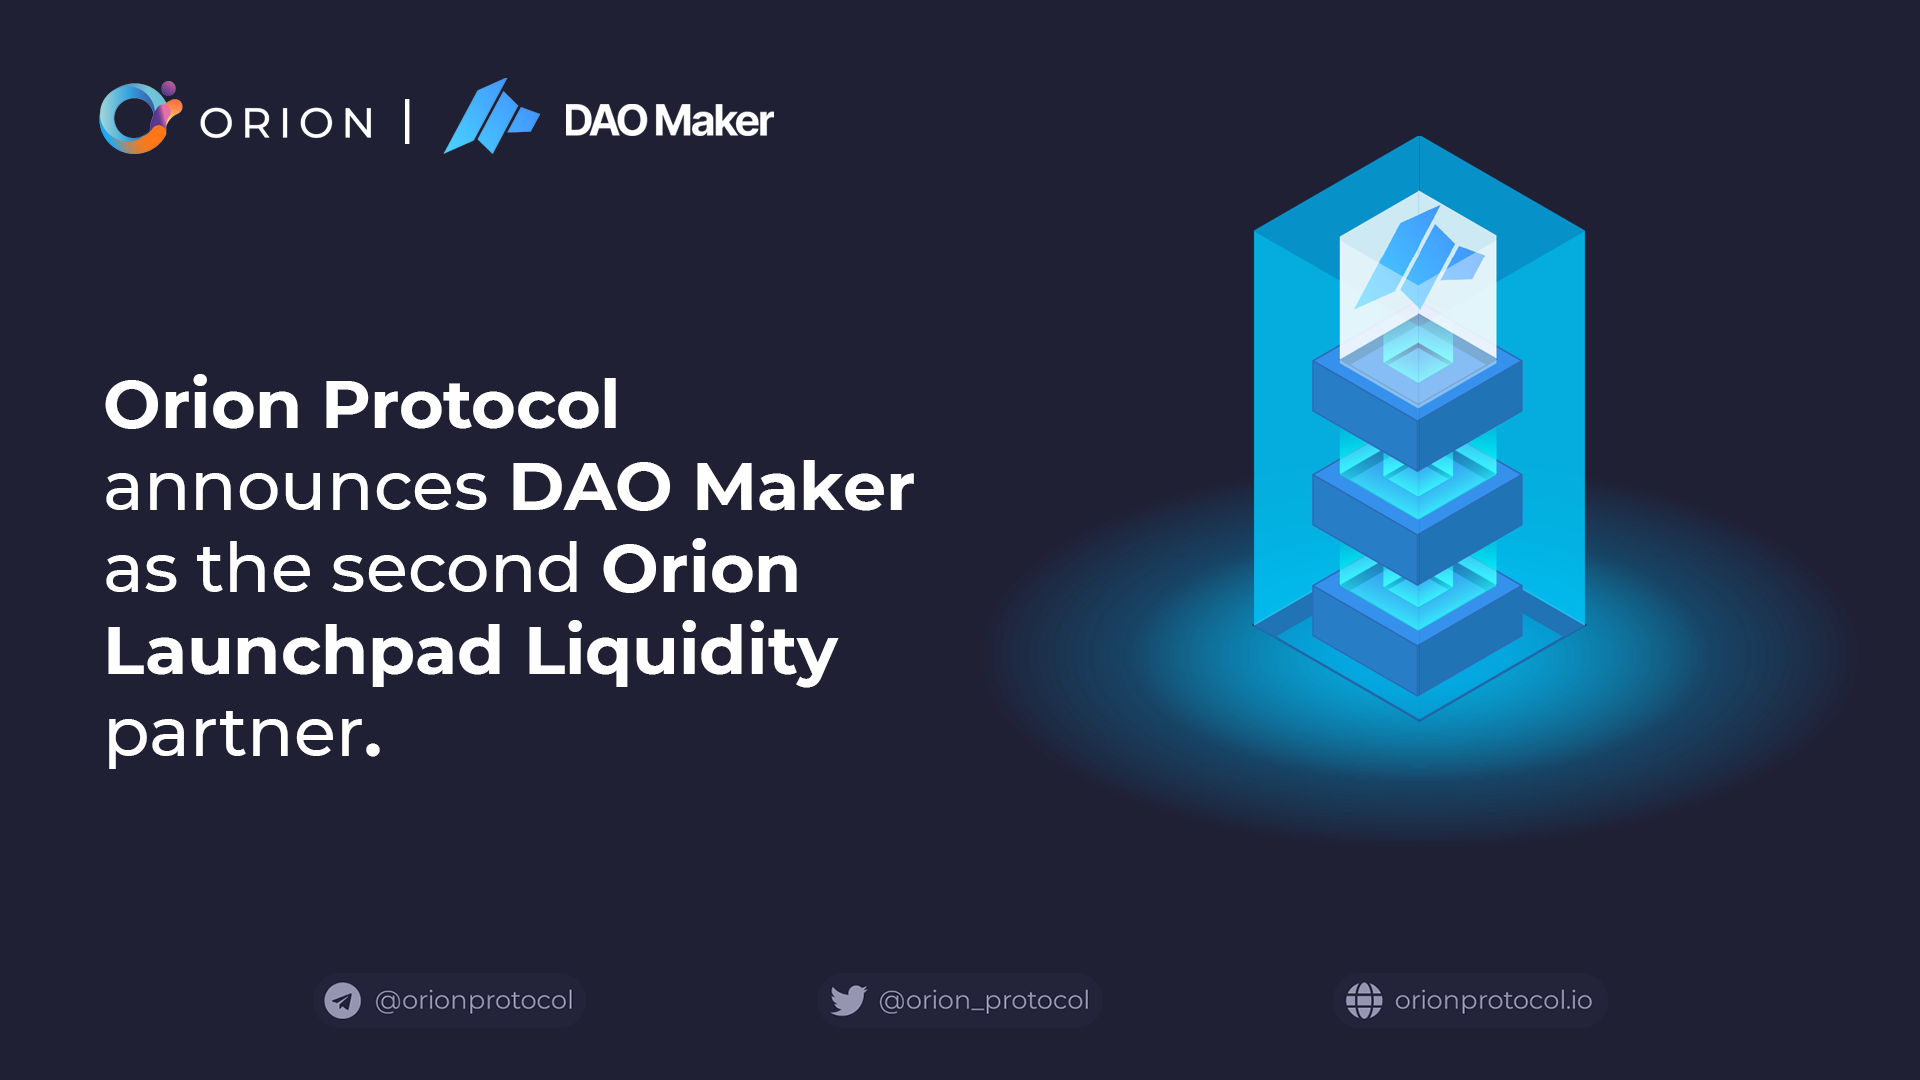 DAO Maker is second Launchpad Liquidity partner